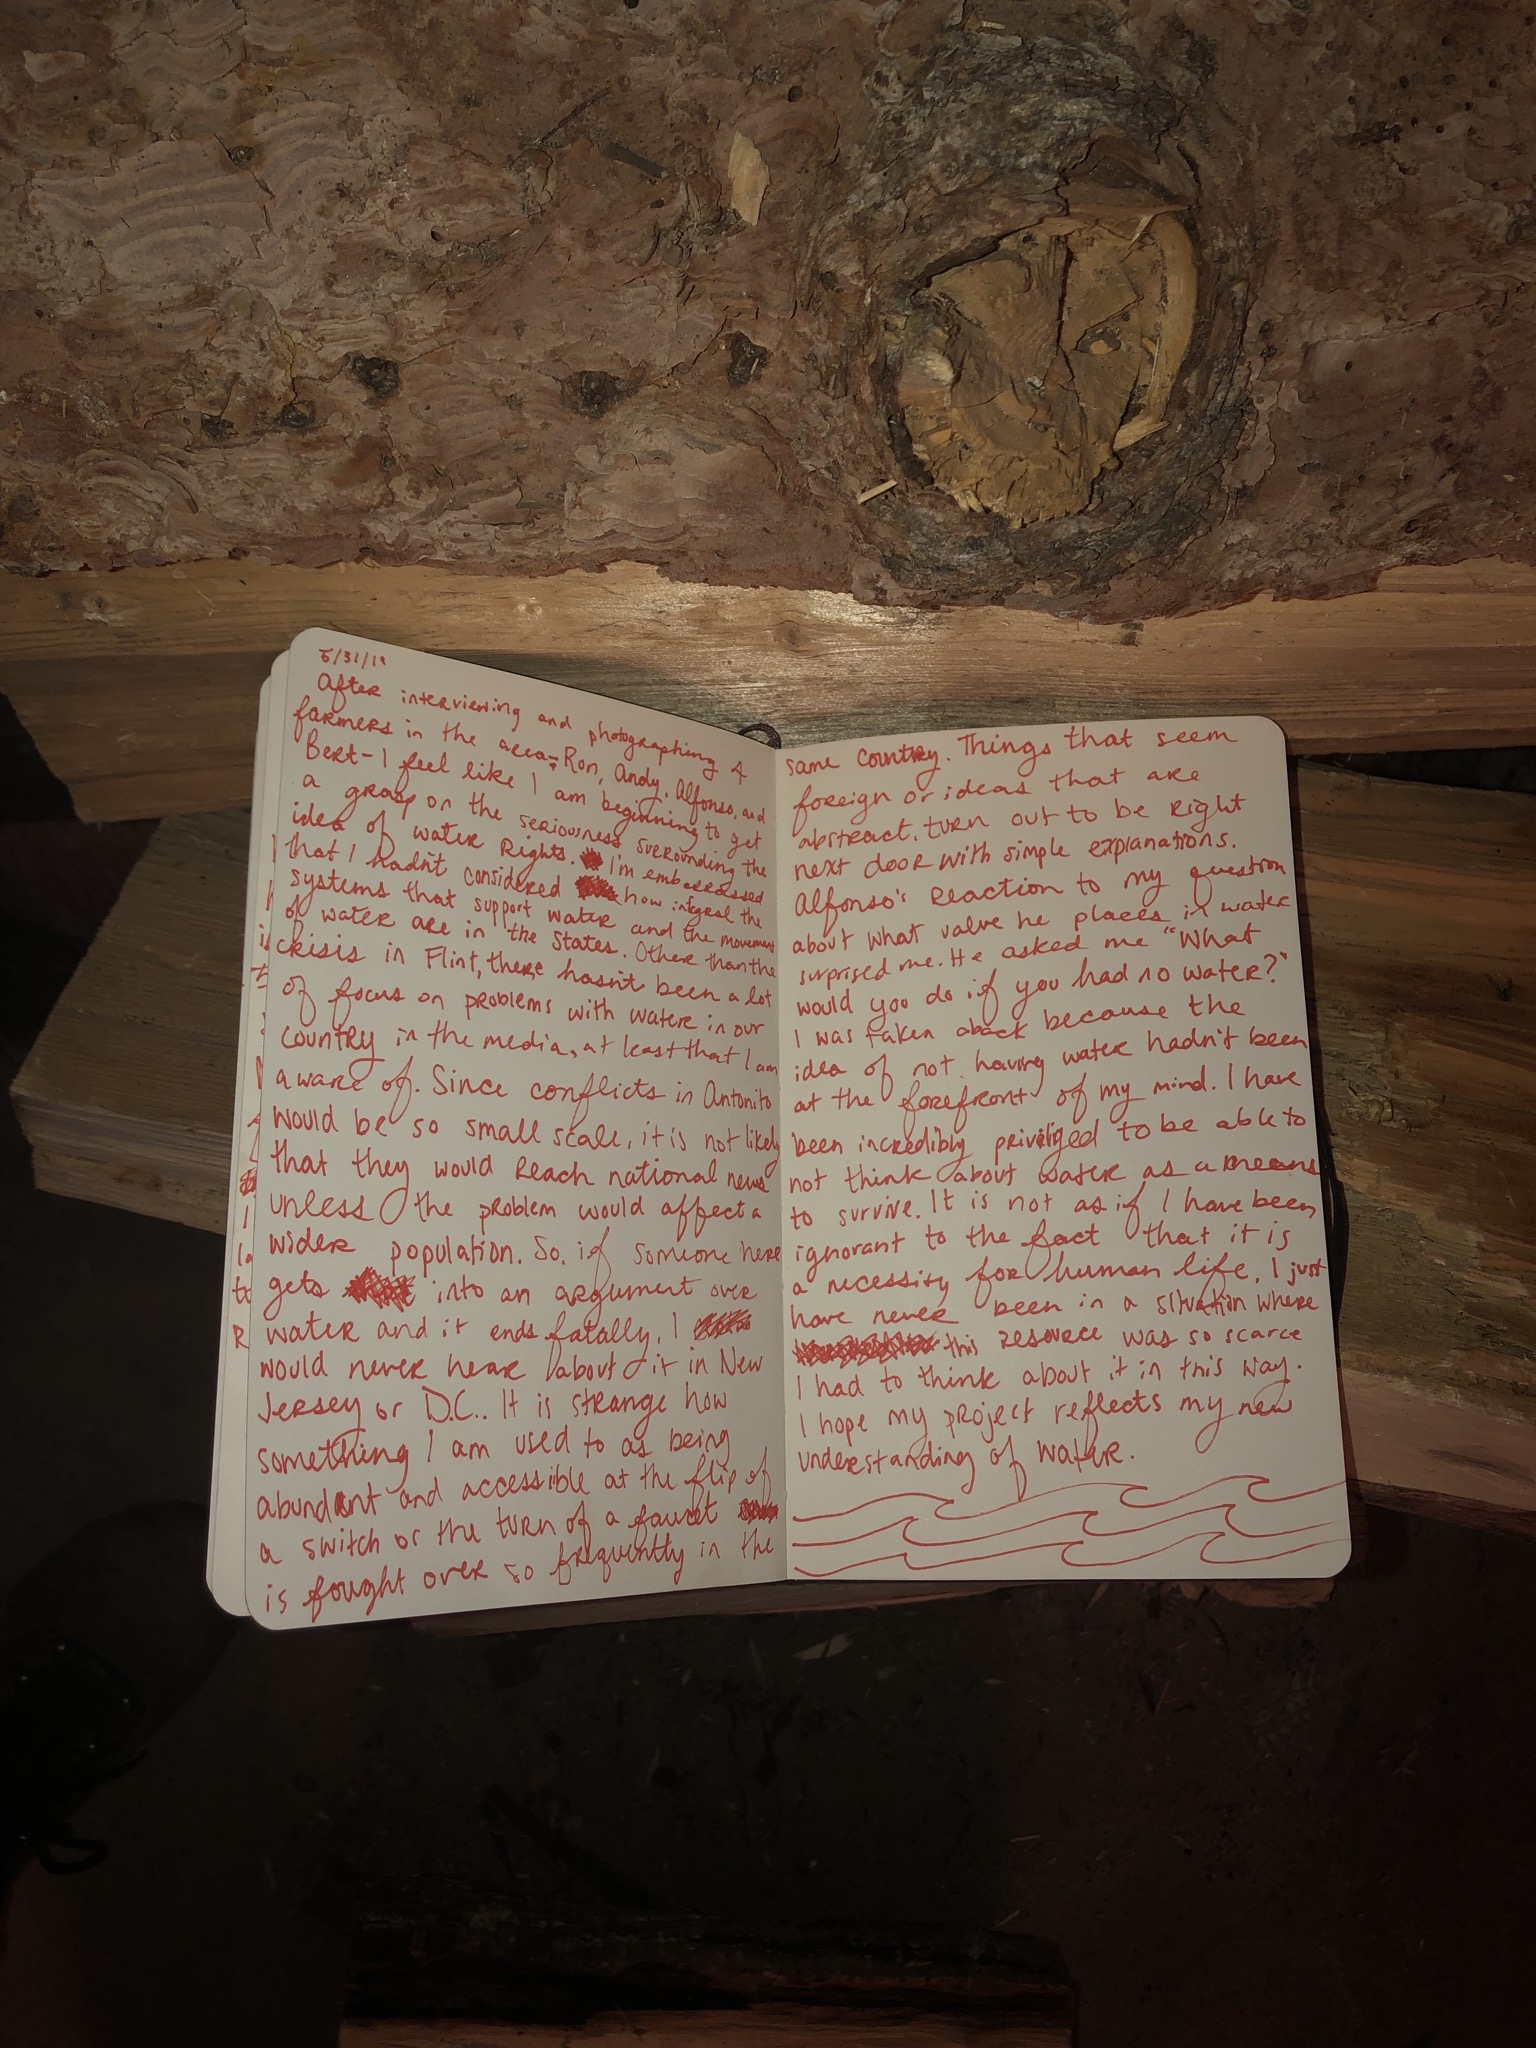 This journal entry was a reflection after interviewing and photographing my subjects.